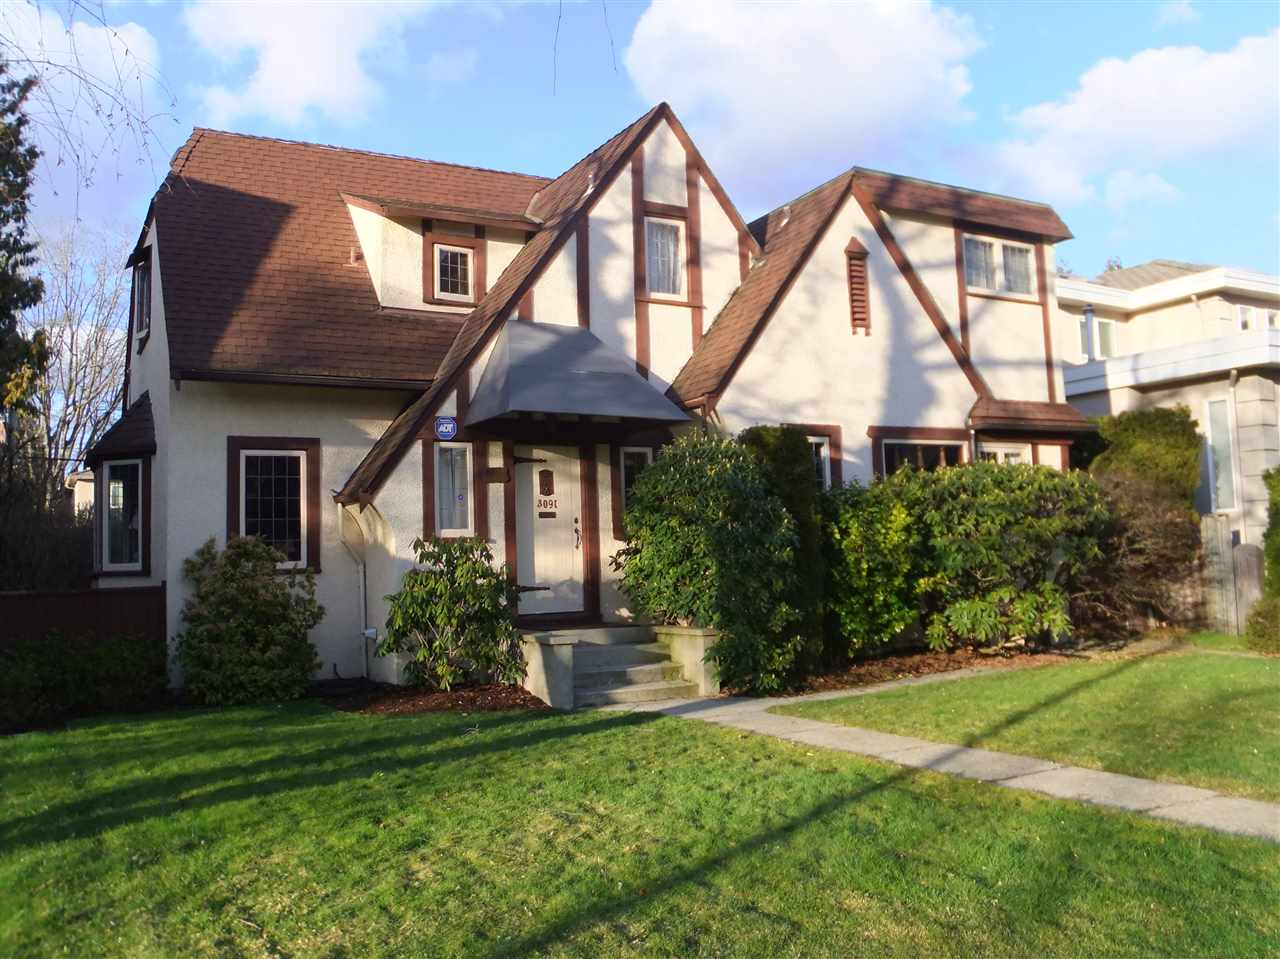 Main Photo: 3091 W 33RD Avenue in Vancouver: MacKenzie Heights House for sale (Vancouver West)  : MLS®# R2243797